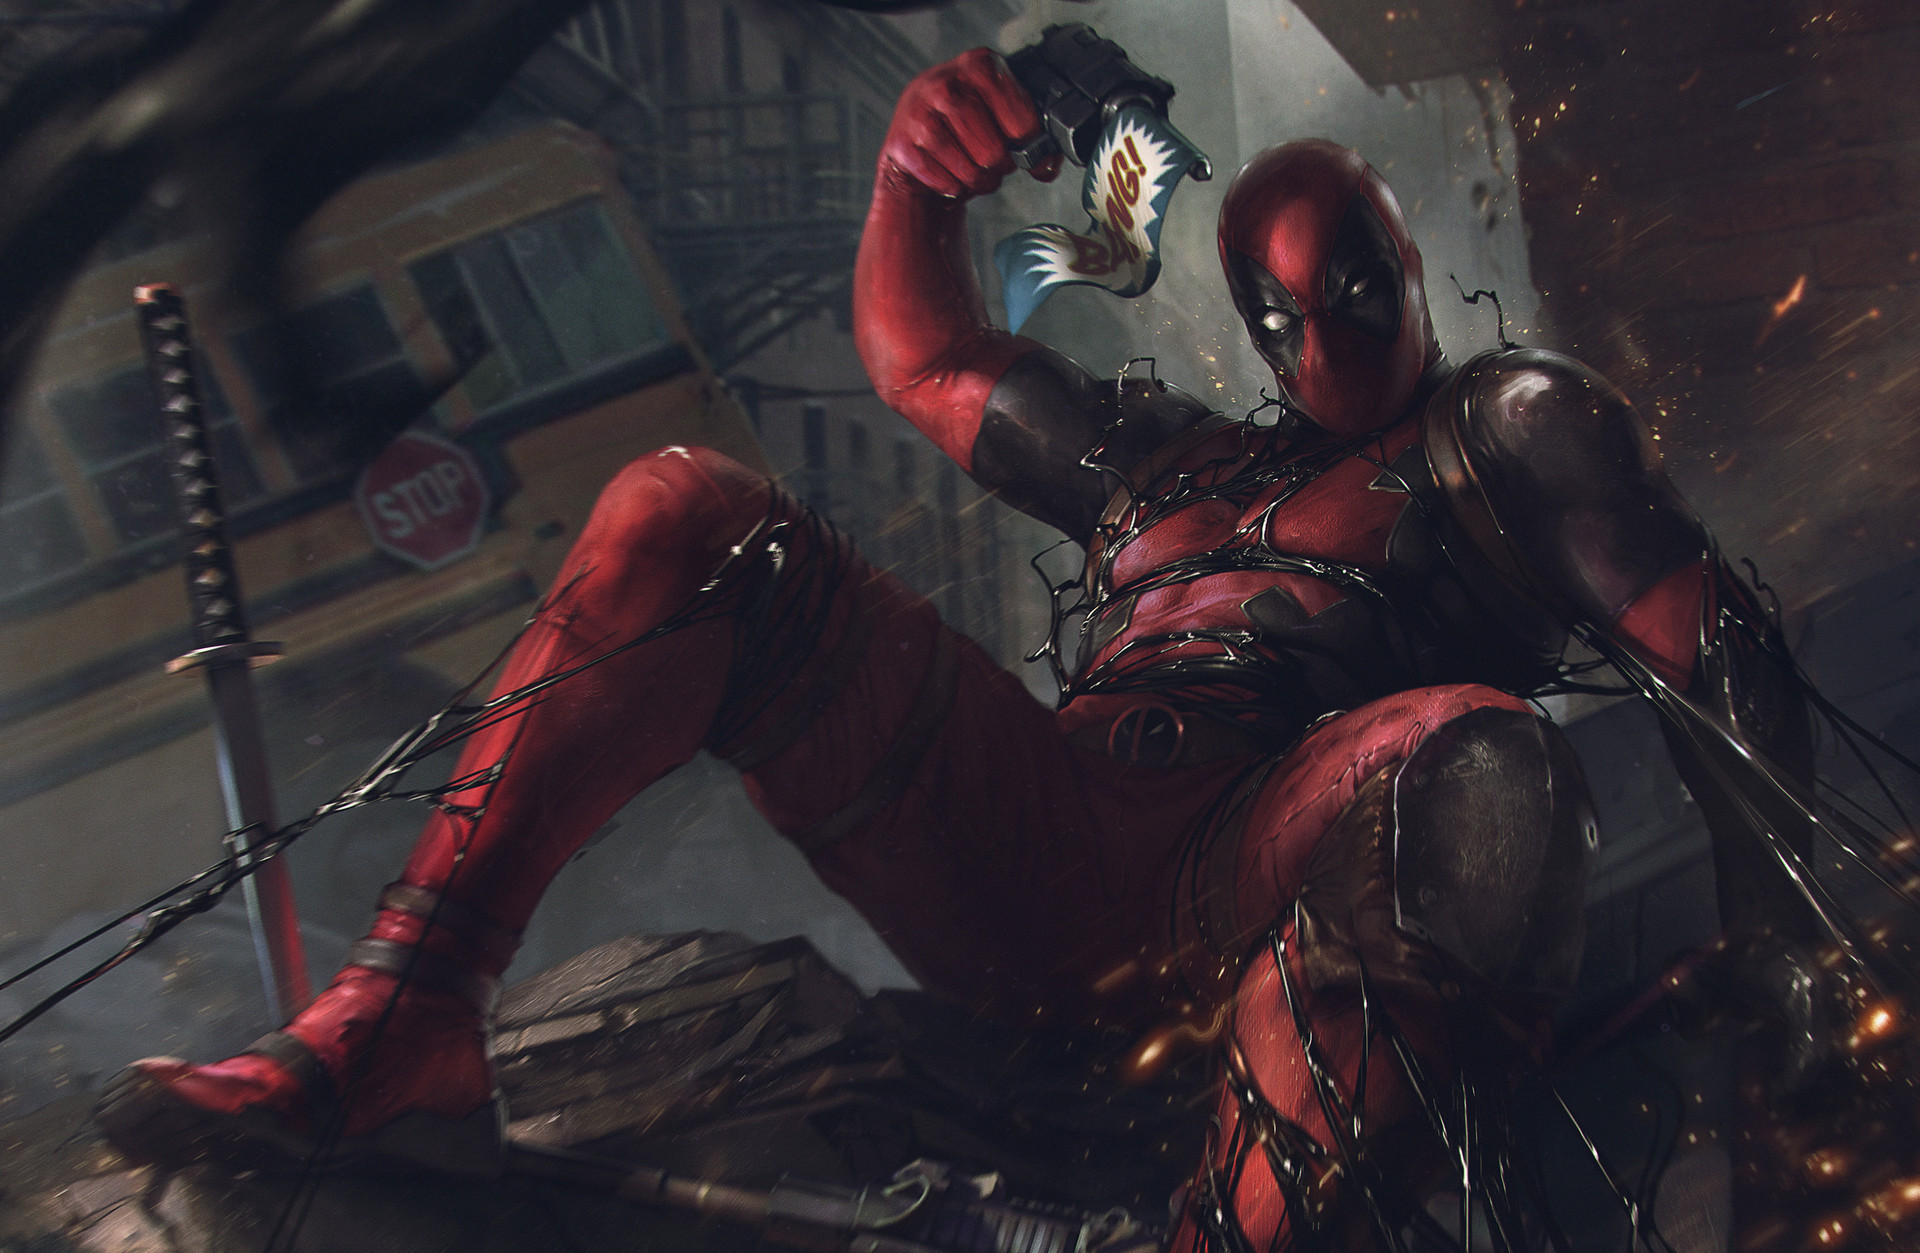 Deadpool Vs Venom Symbiote Hd Superheroes 4k Wallpapers Images